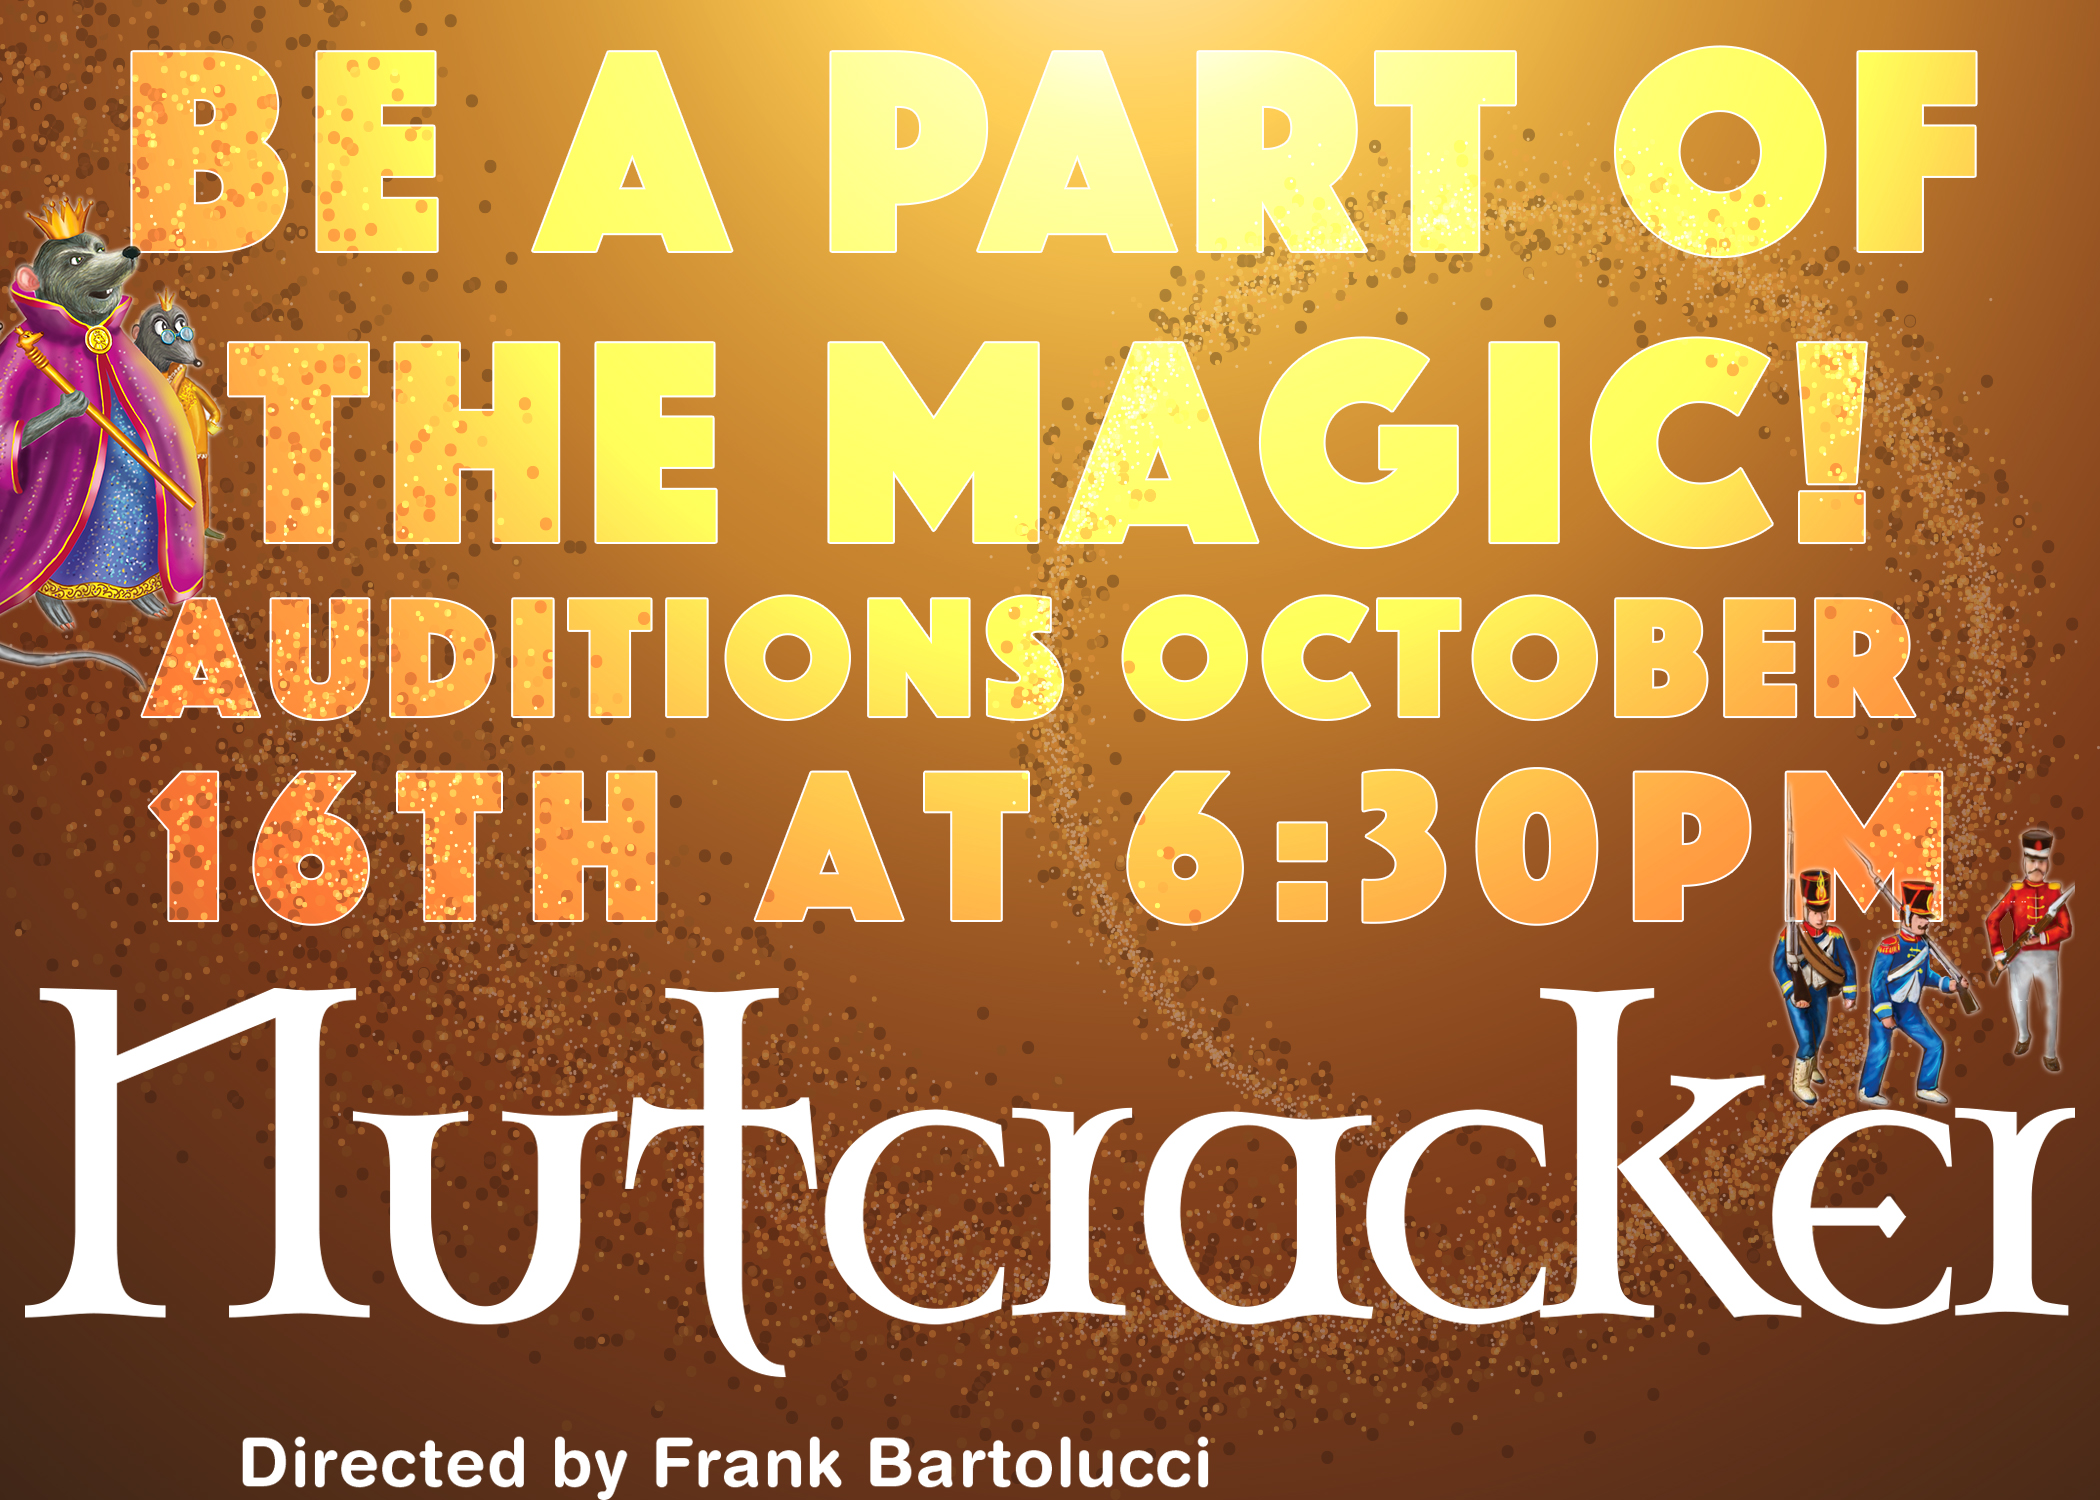 Nutcracker Auditions - Pistarckle Theater, Live Entertainment on St. Thomas USVI